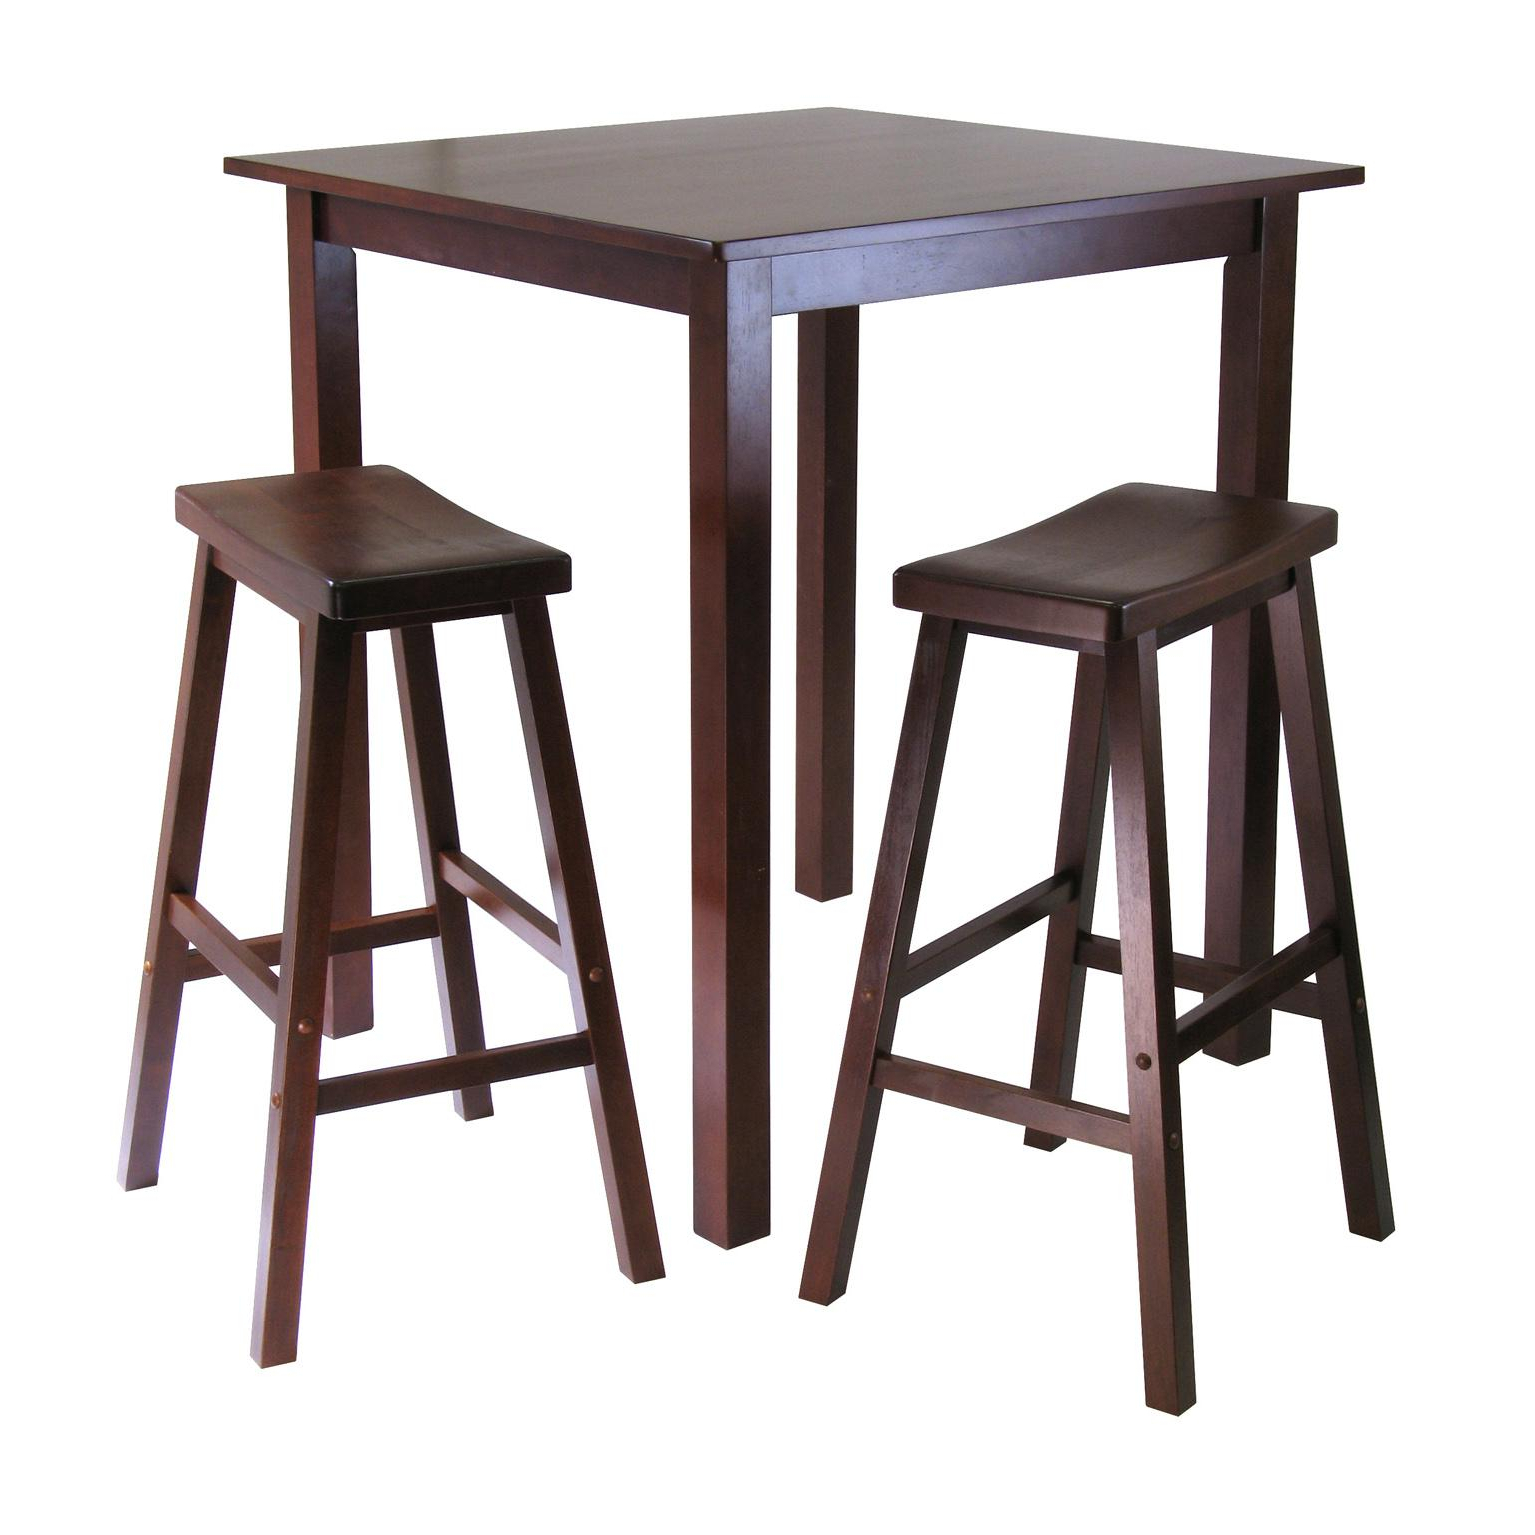 Winsome 3 Piece Counter Height Dining Sets Within Well Liked Amazon: Winsome's Parkland 3 Piece Square High/pub Table Set In (View 7 of 25)